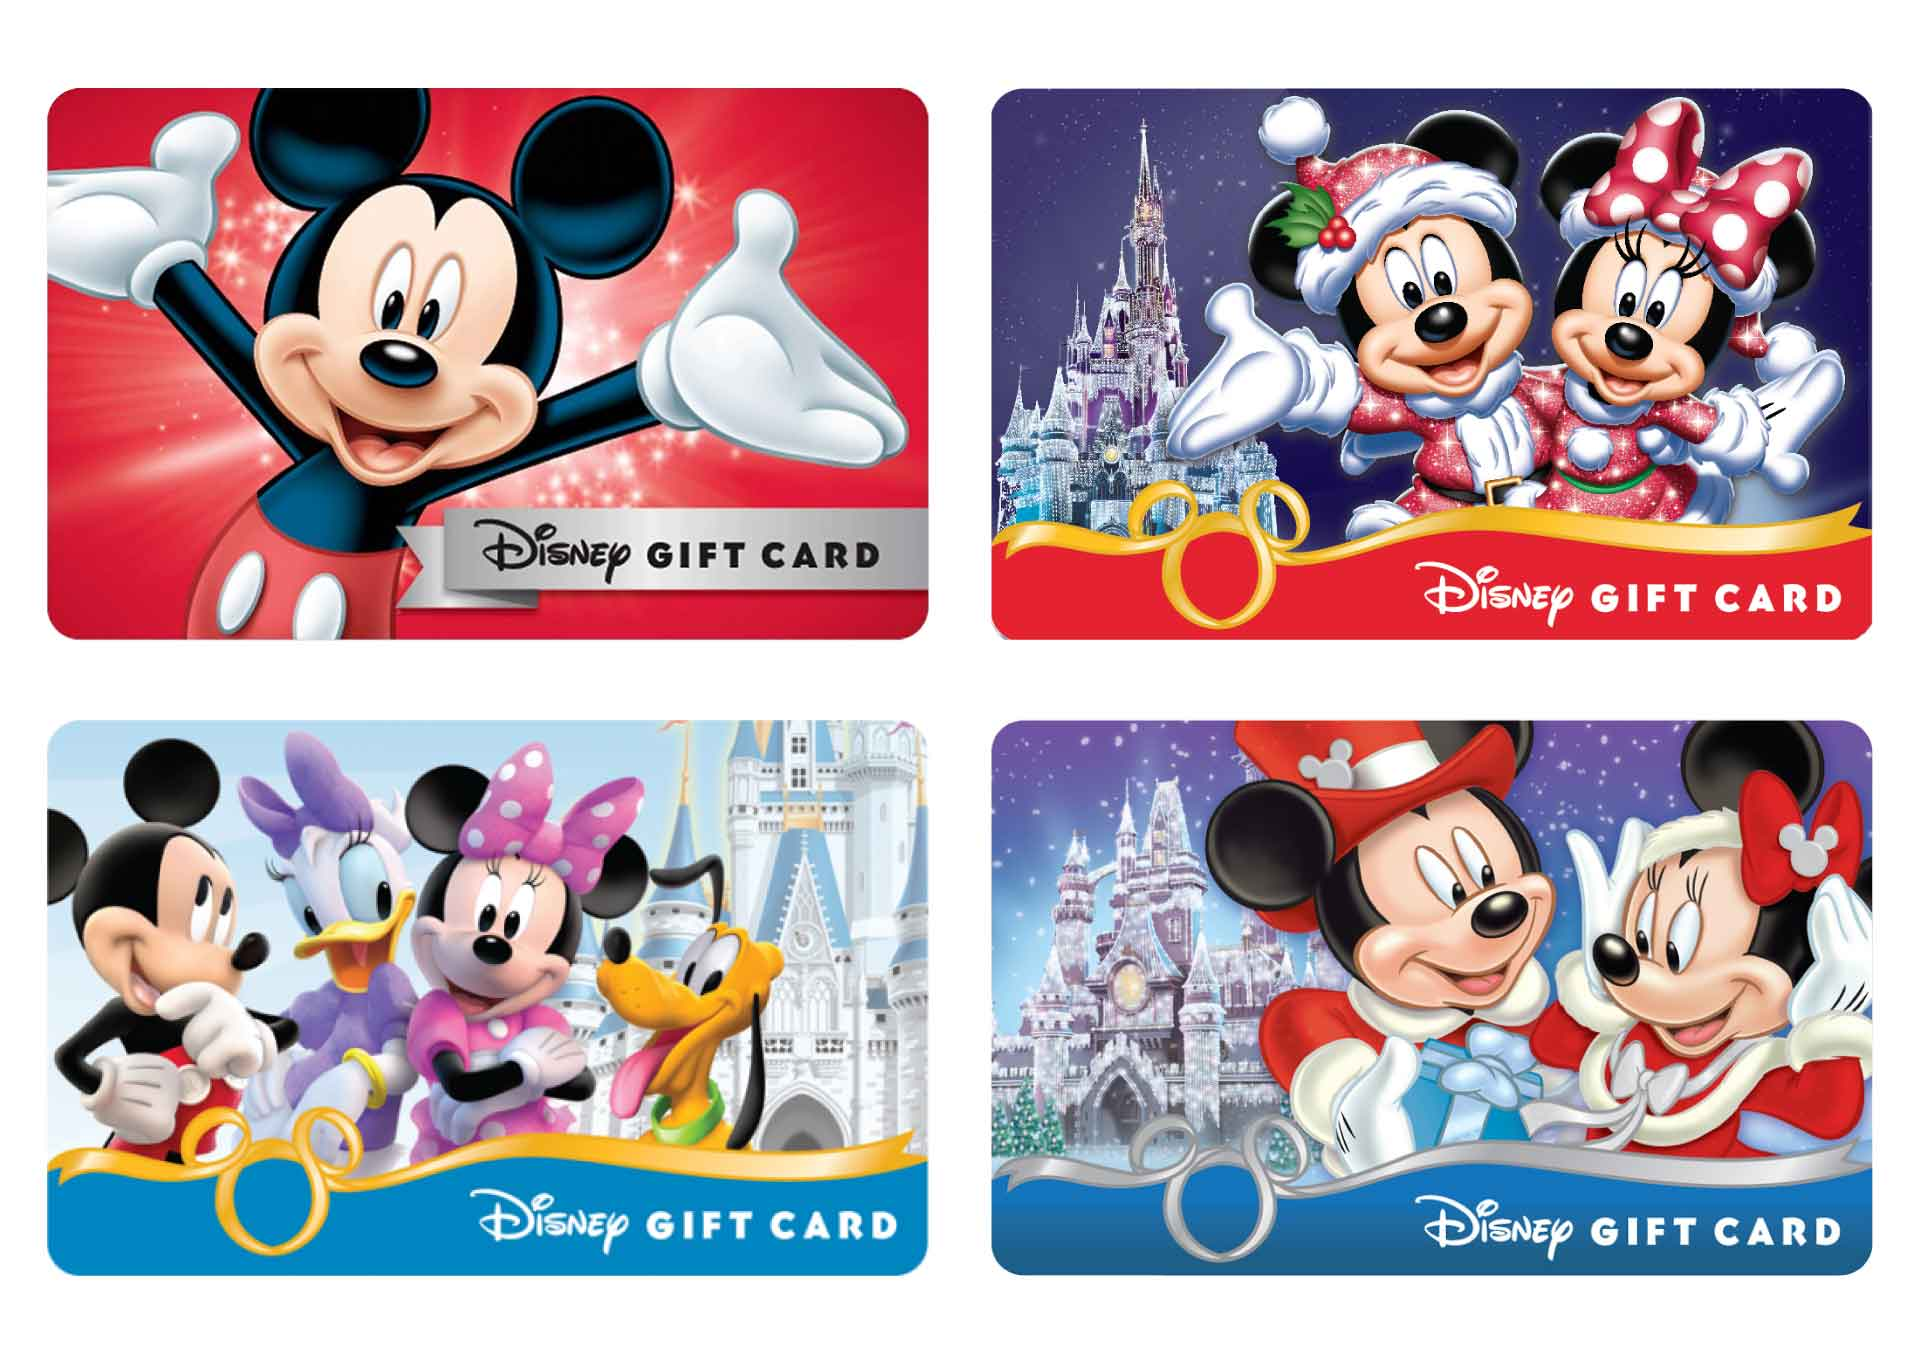 Disney's Gift Cards coleccionables